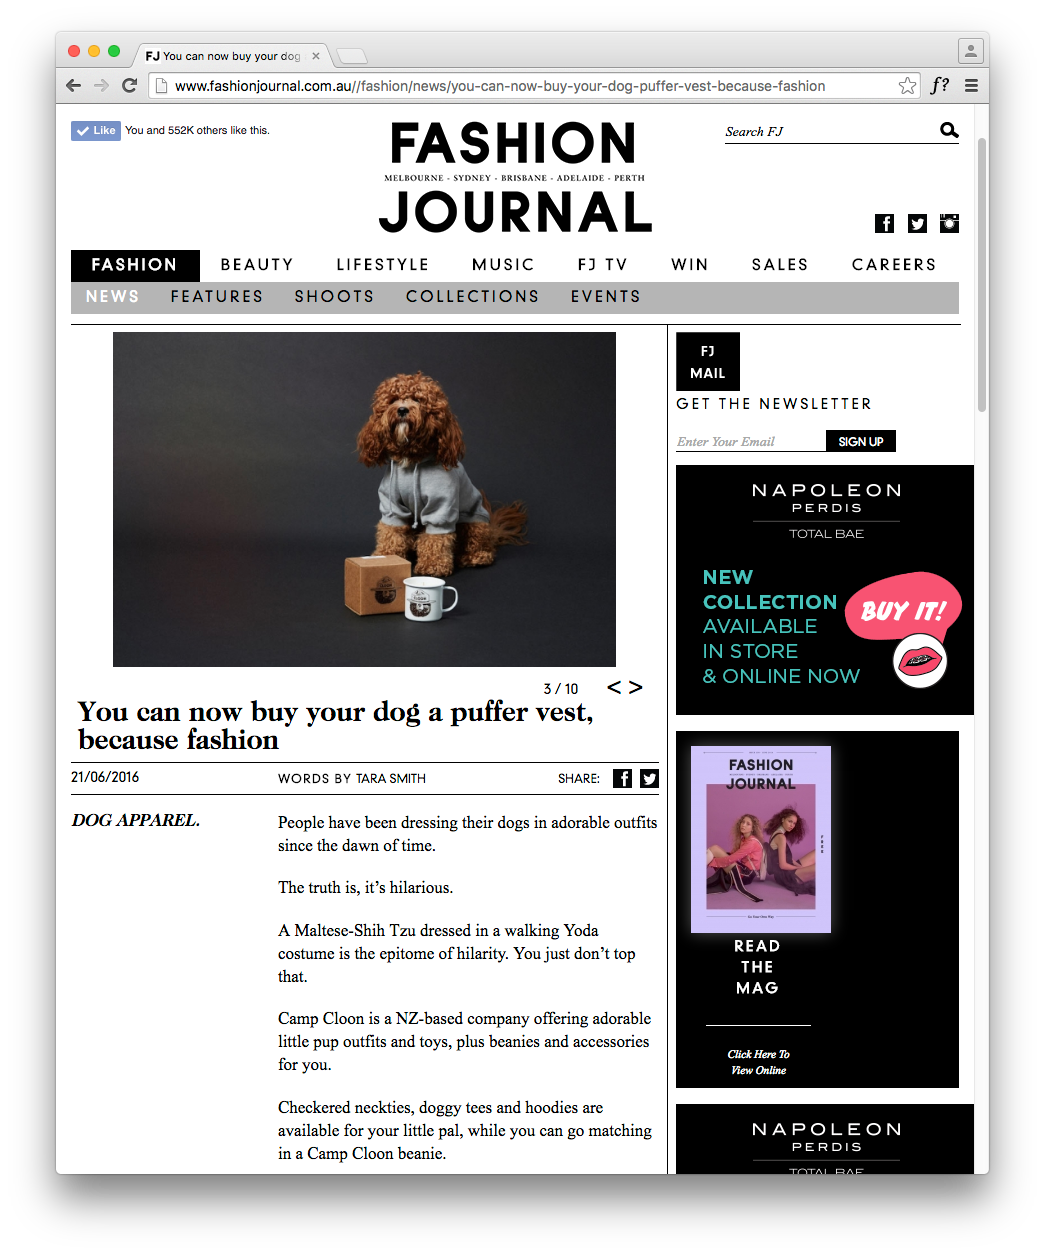 http://www.fashionjournal.com.au//fashion/news/you-can-now-buy-your-dog-puffer-vest-because-fashion